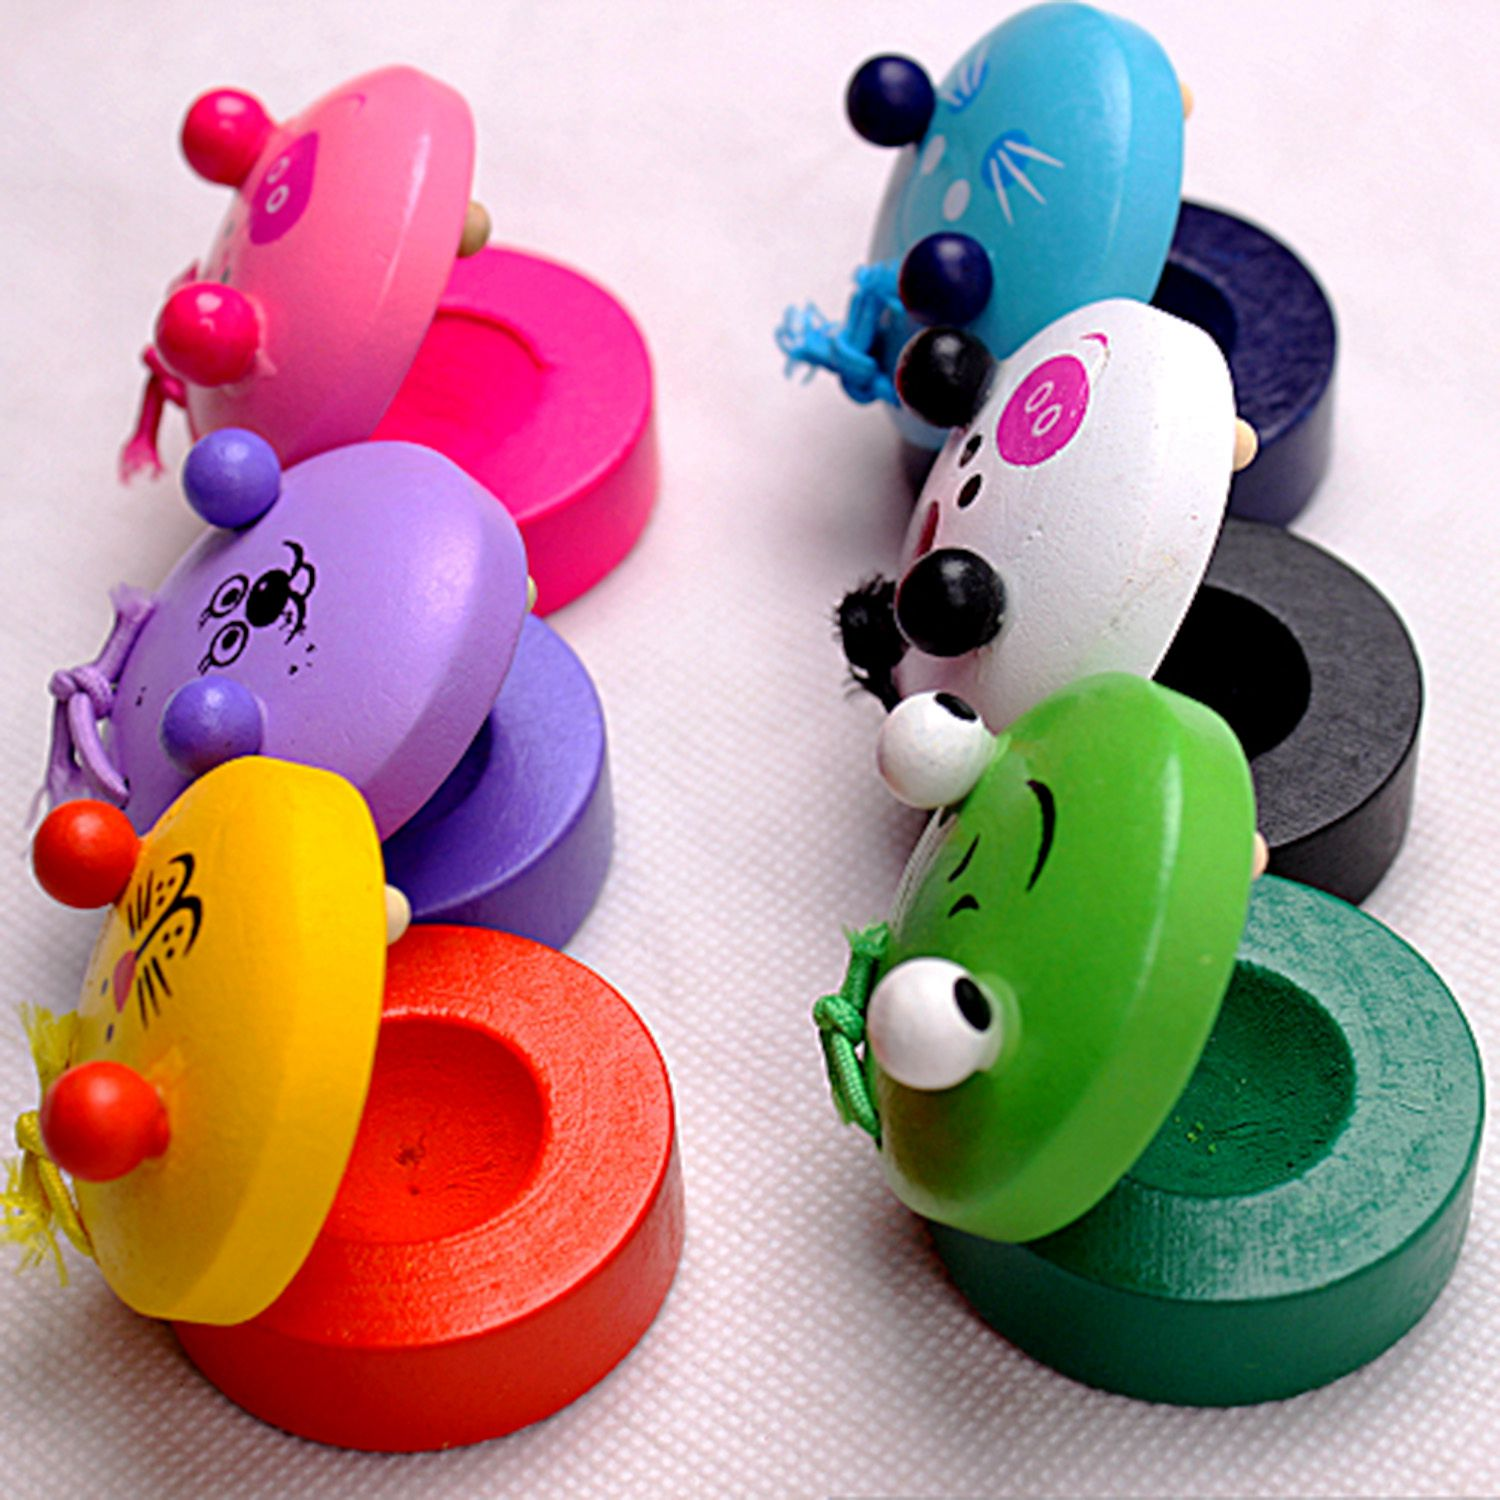 Cartoon Castanet Toys For Kids Children Toy Musical Instrument Preschool Early Educational Toys